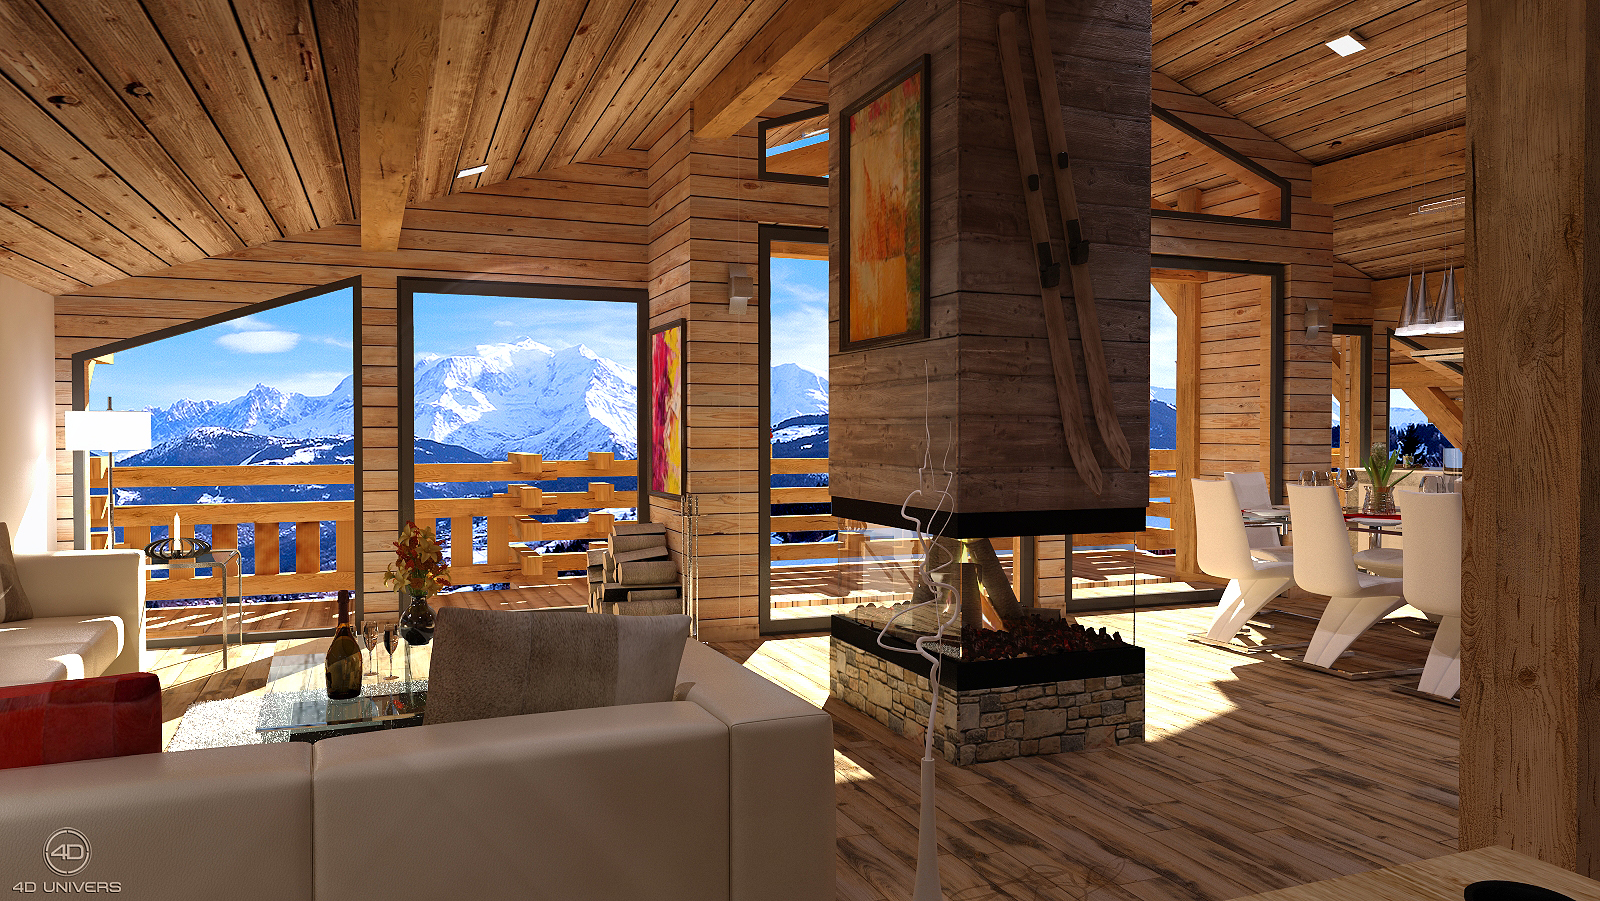 Chalet meg ve 4d univers studio animation 3d - Chalet en bois interieur ...